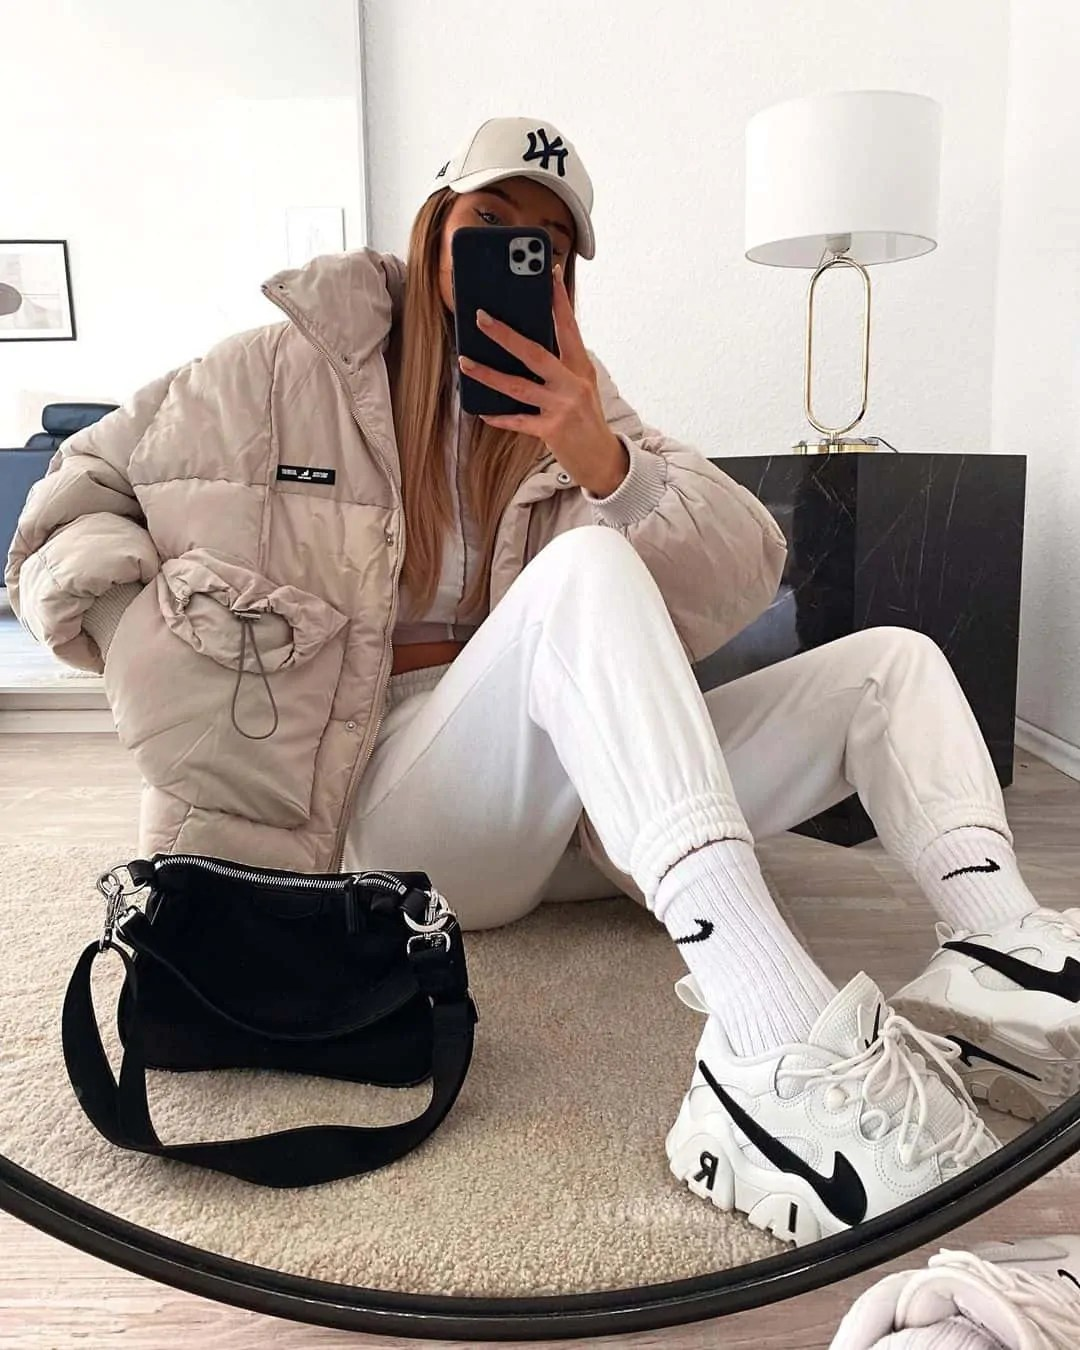 100+ fashion inspo outfits that you have to see no matter what your style is 27